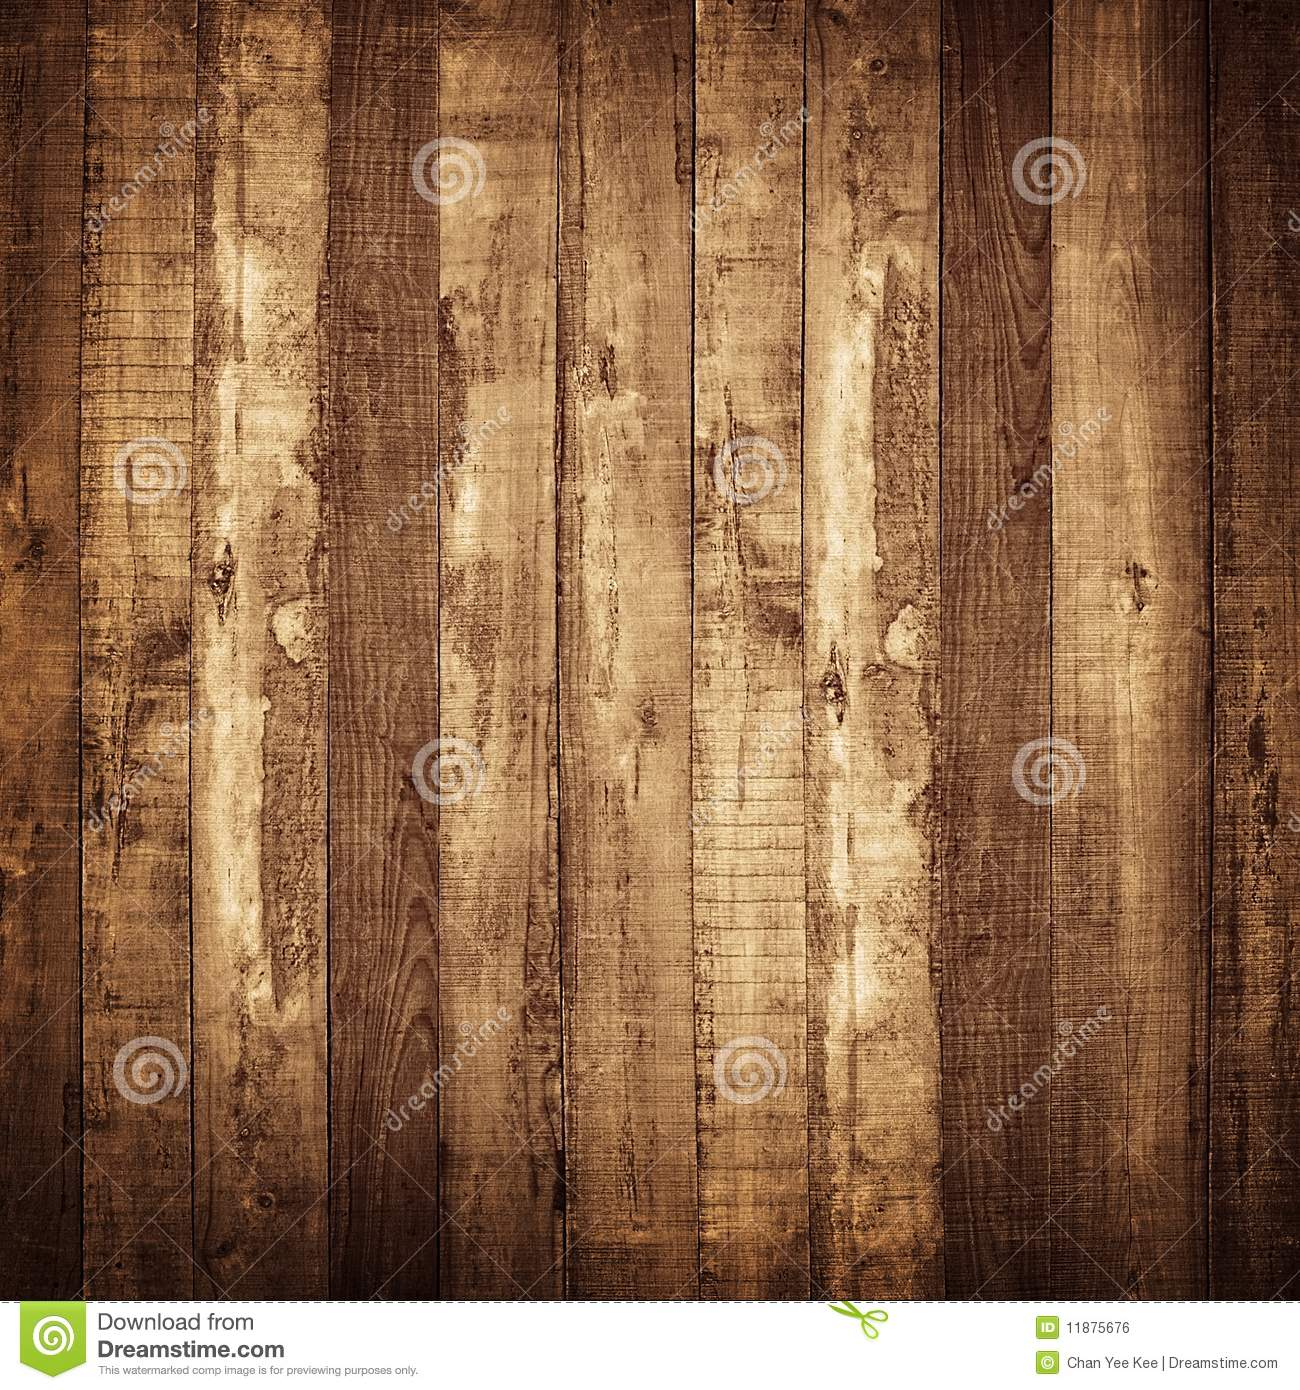 Wood Plank Background Royalty Free Stock Image - Image: 11875676